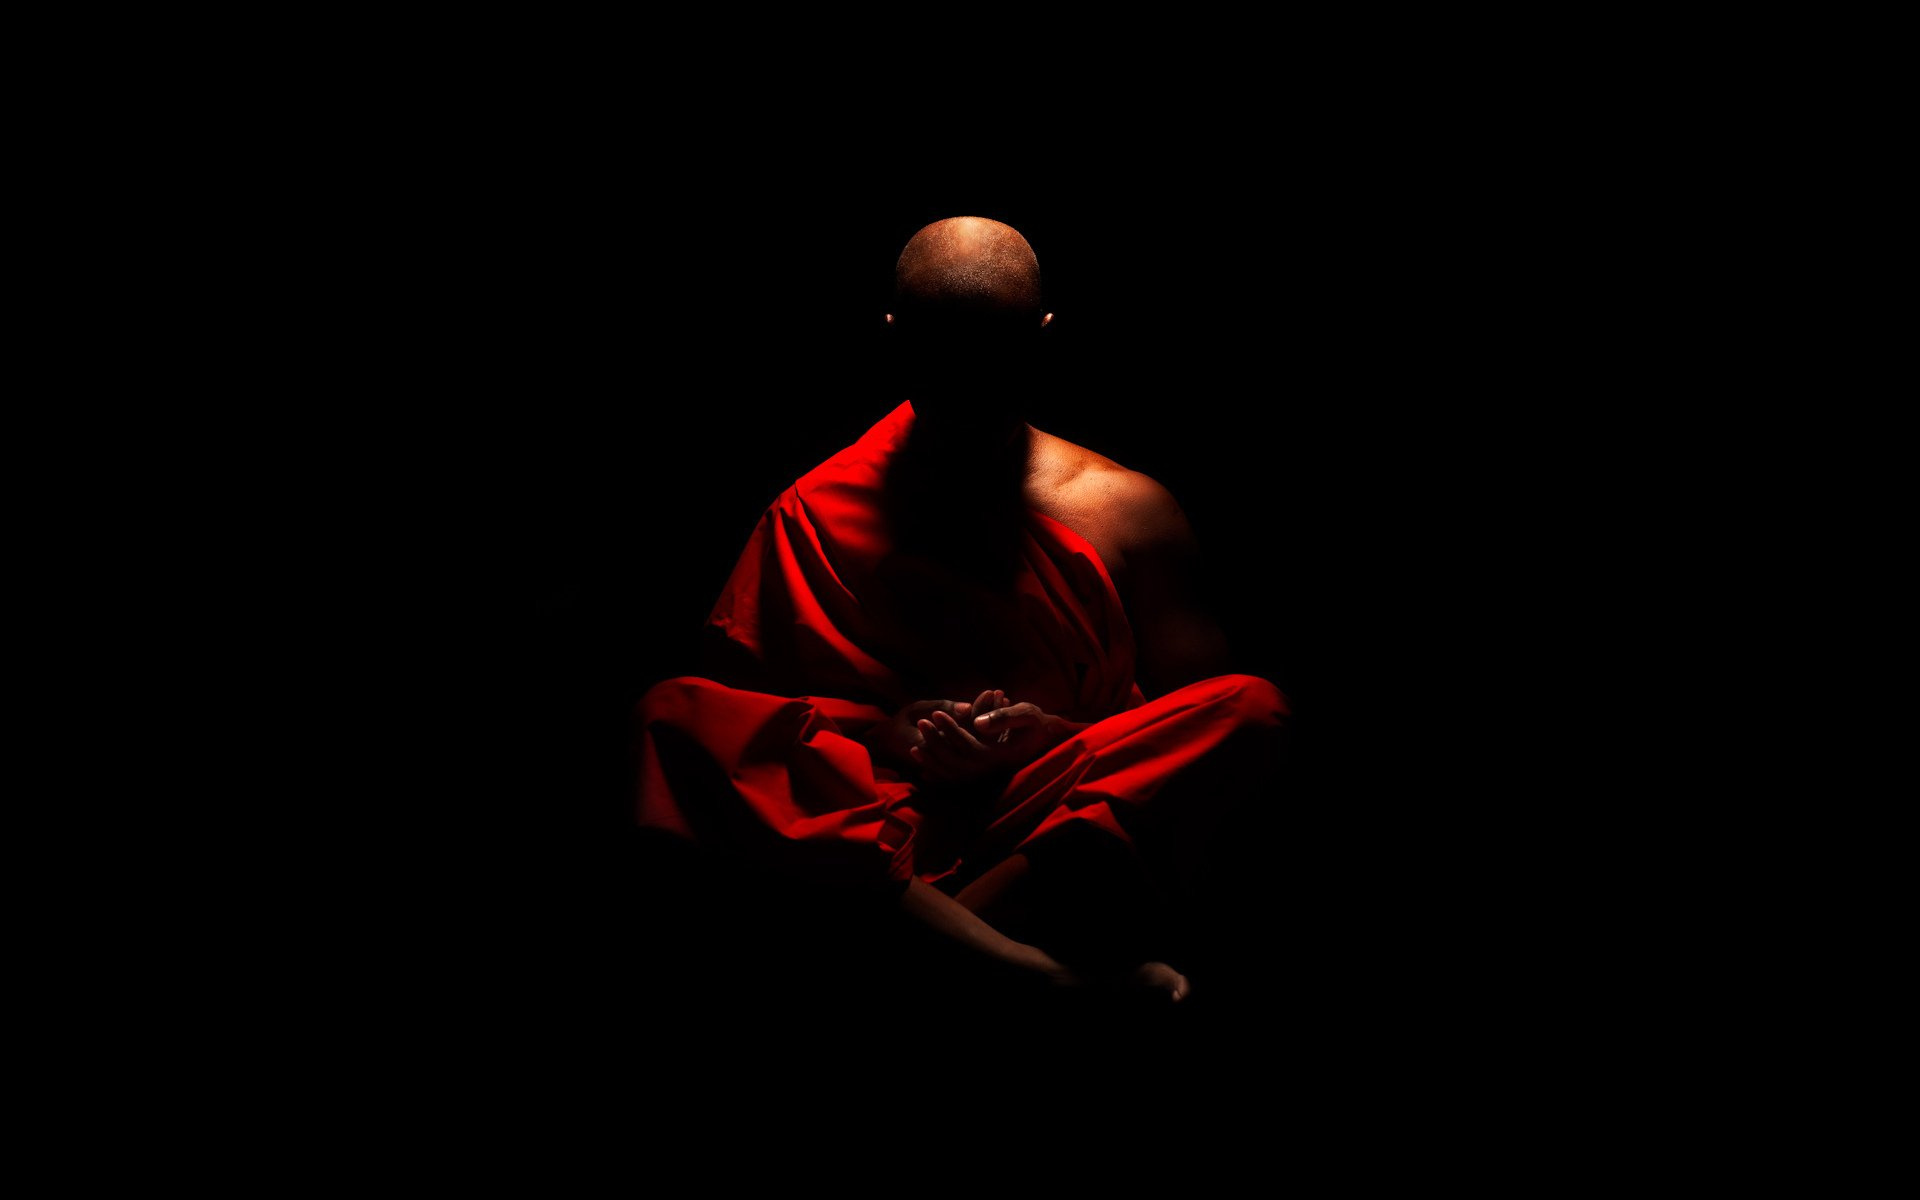 Meditation Buddhism monk religion robe zen wallpaper 1920x1200 1920x1200